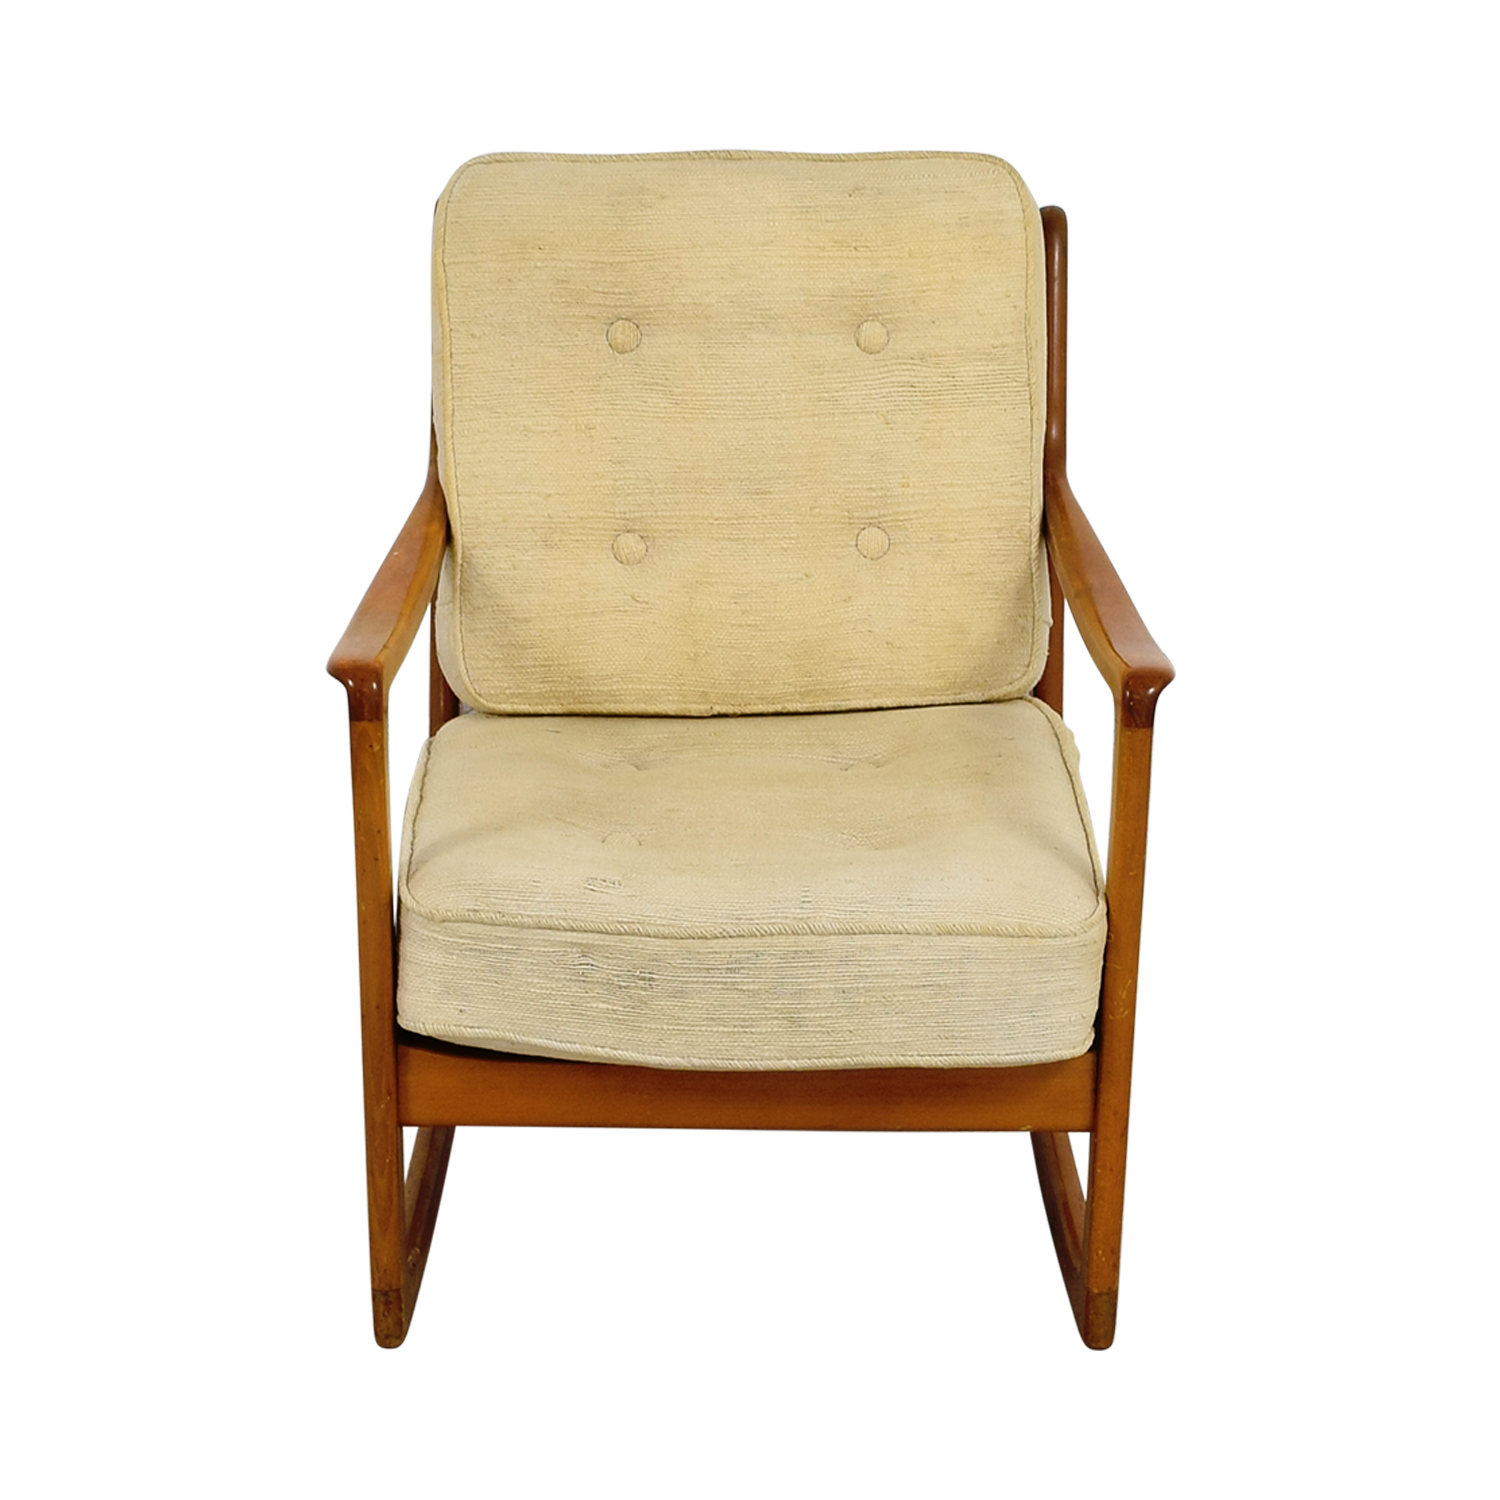 Incroyable ... John Stuart Inc John Stuart Inc Mid Century Danish Beige Teak Rocking  Chair Accent Chairs ...